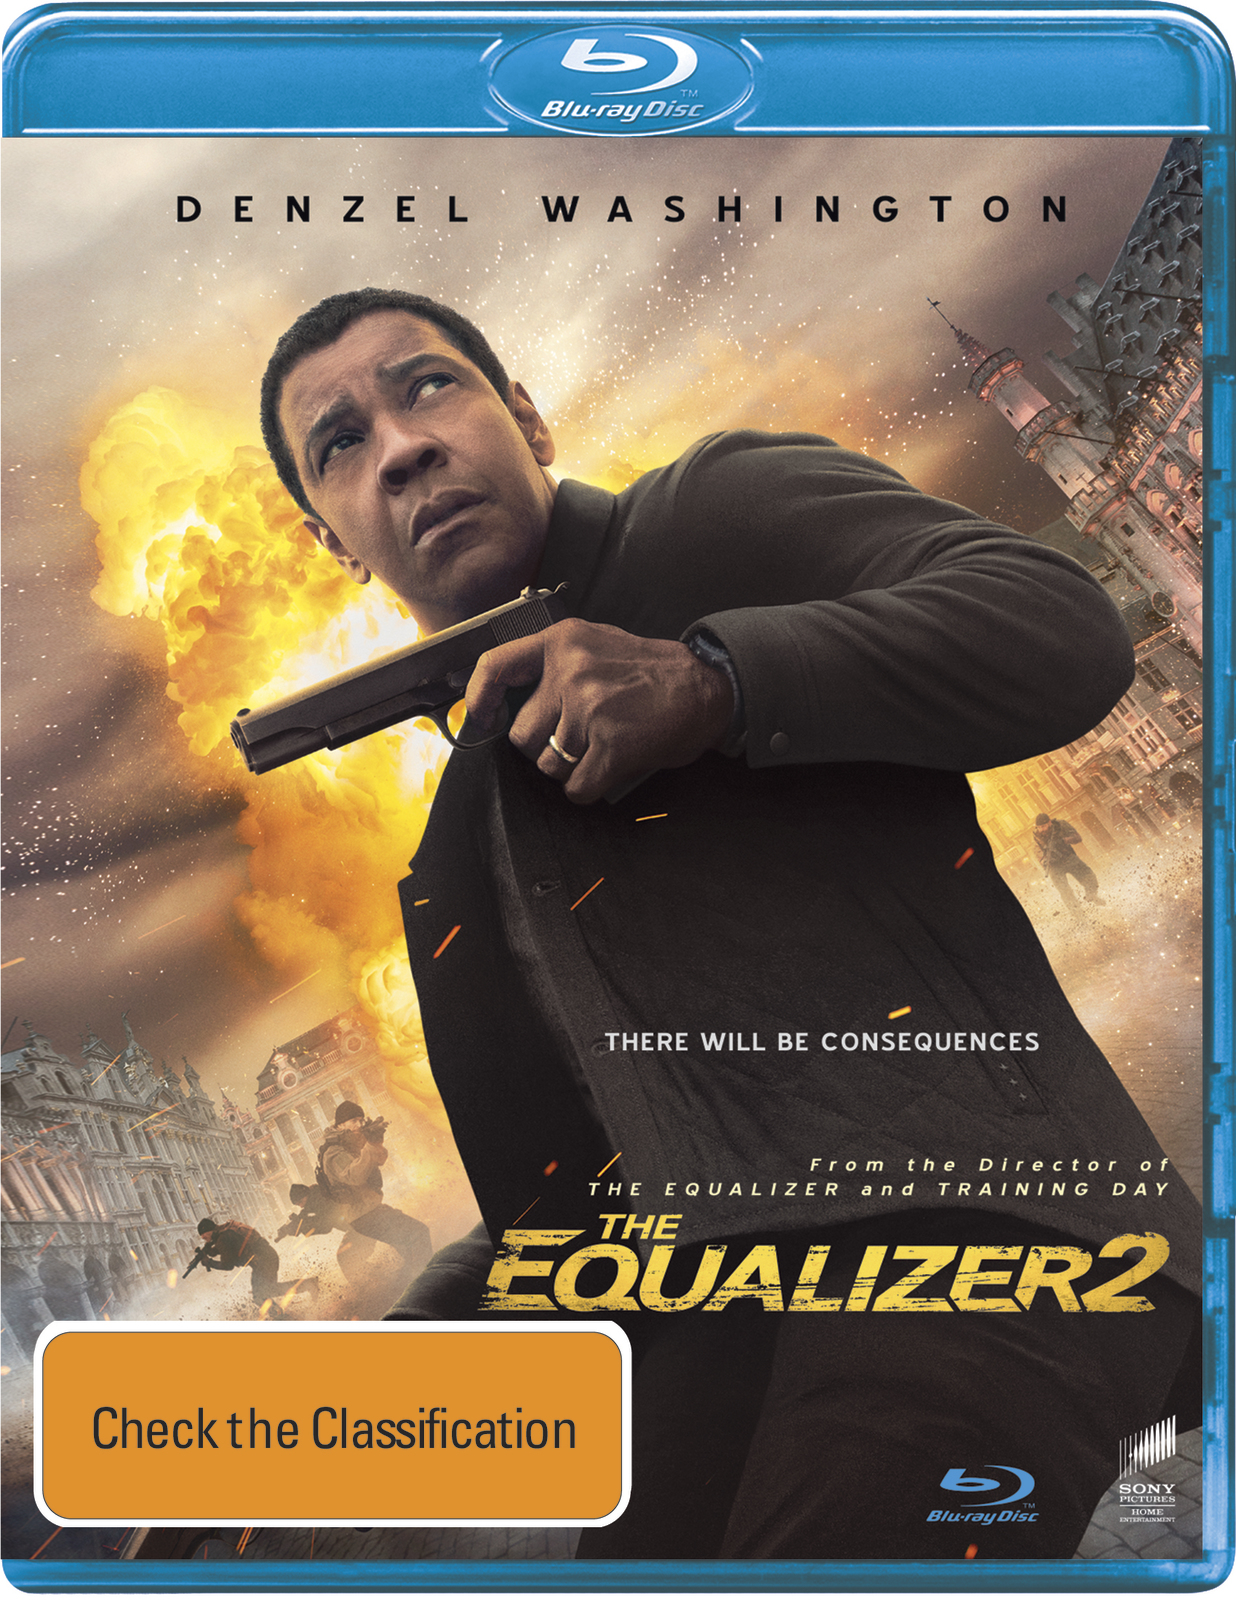 The Equalizer 2 on Blu-ray image